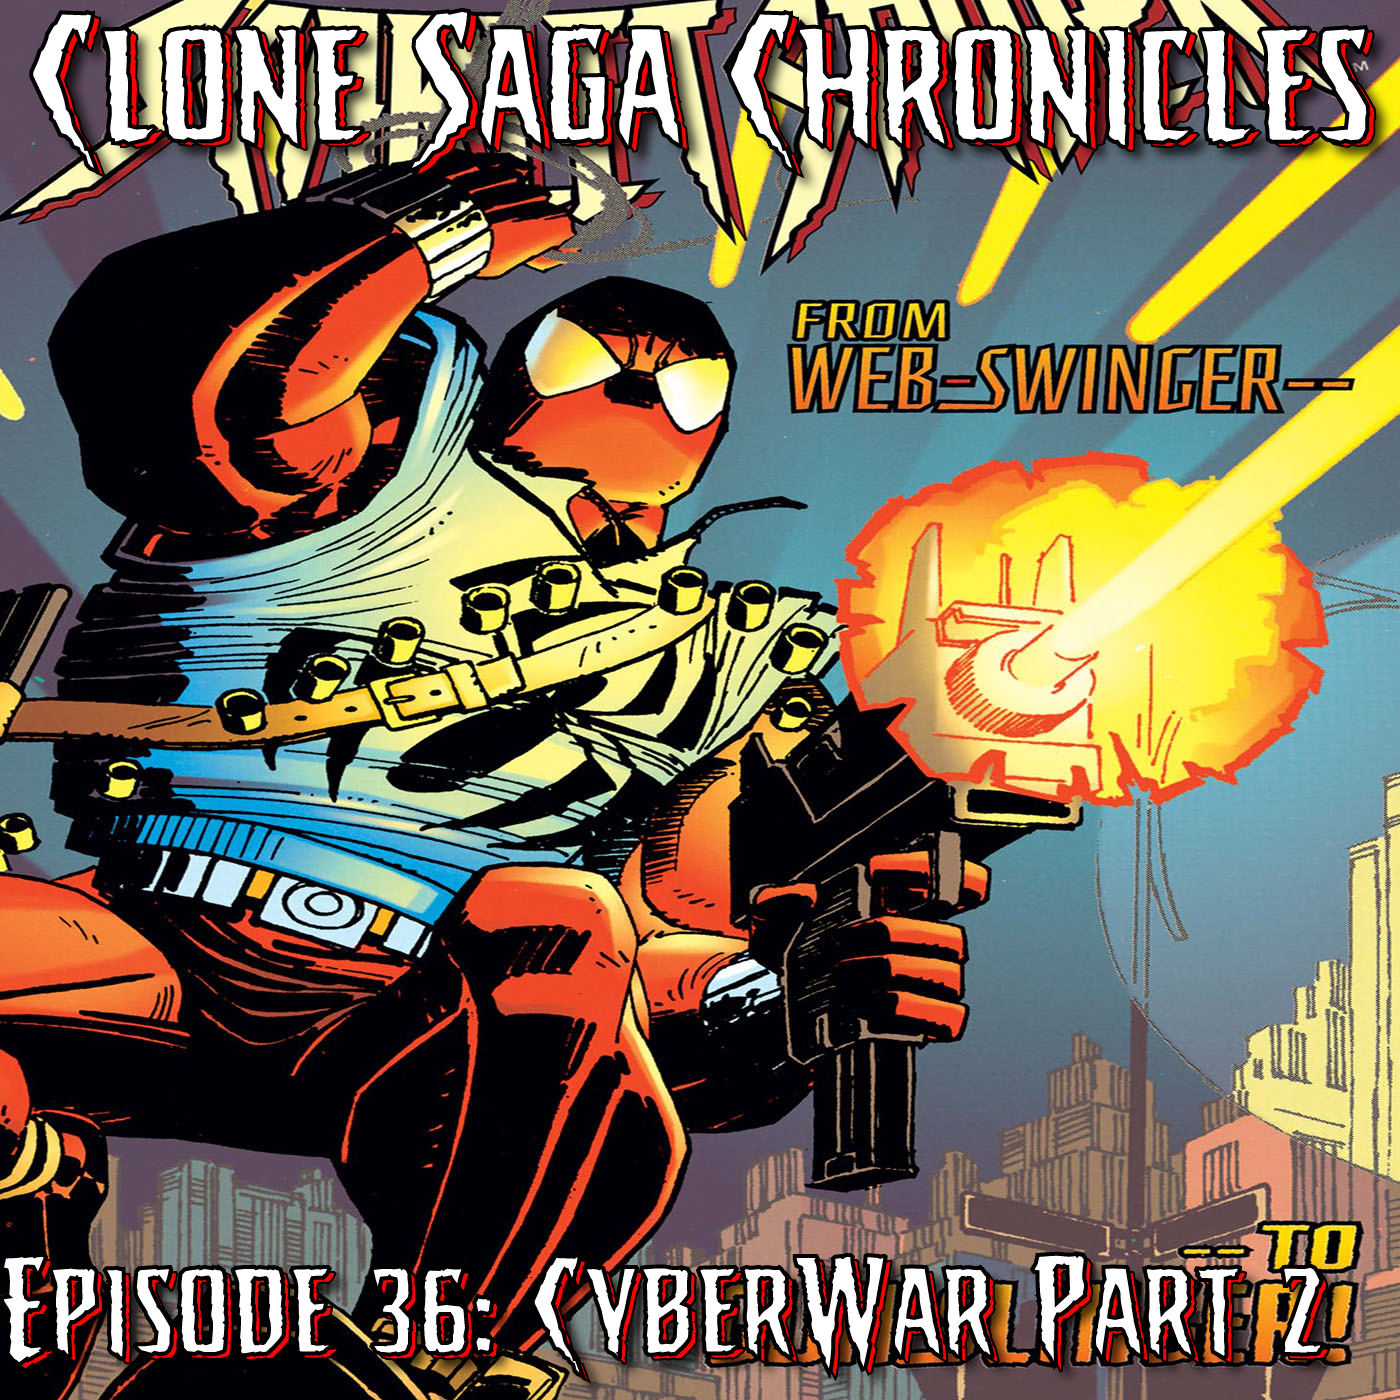 CSC Episode 36: Cyberwar Part 3 and 4 [December 1995]